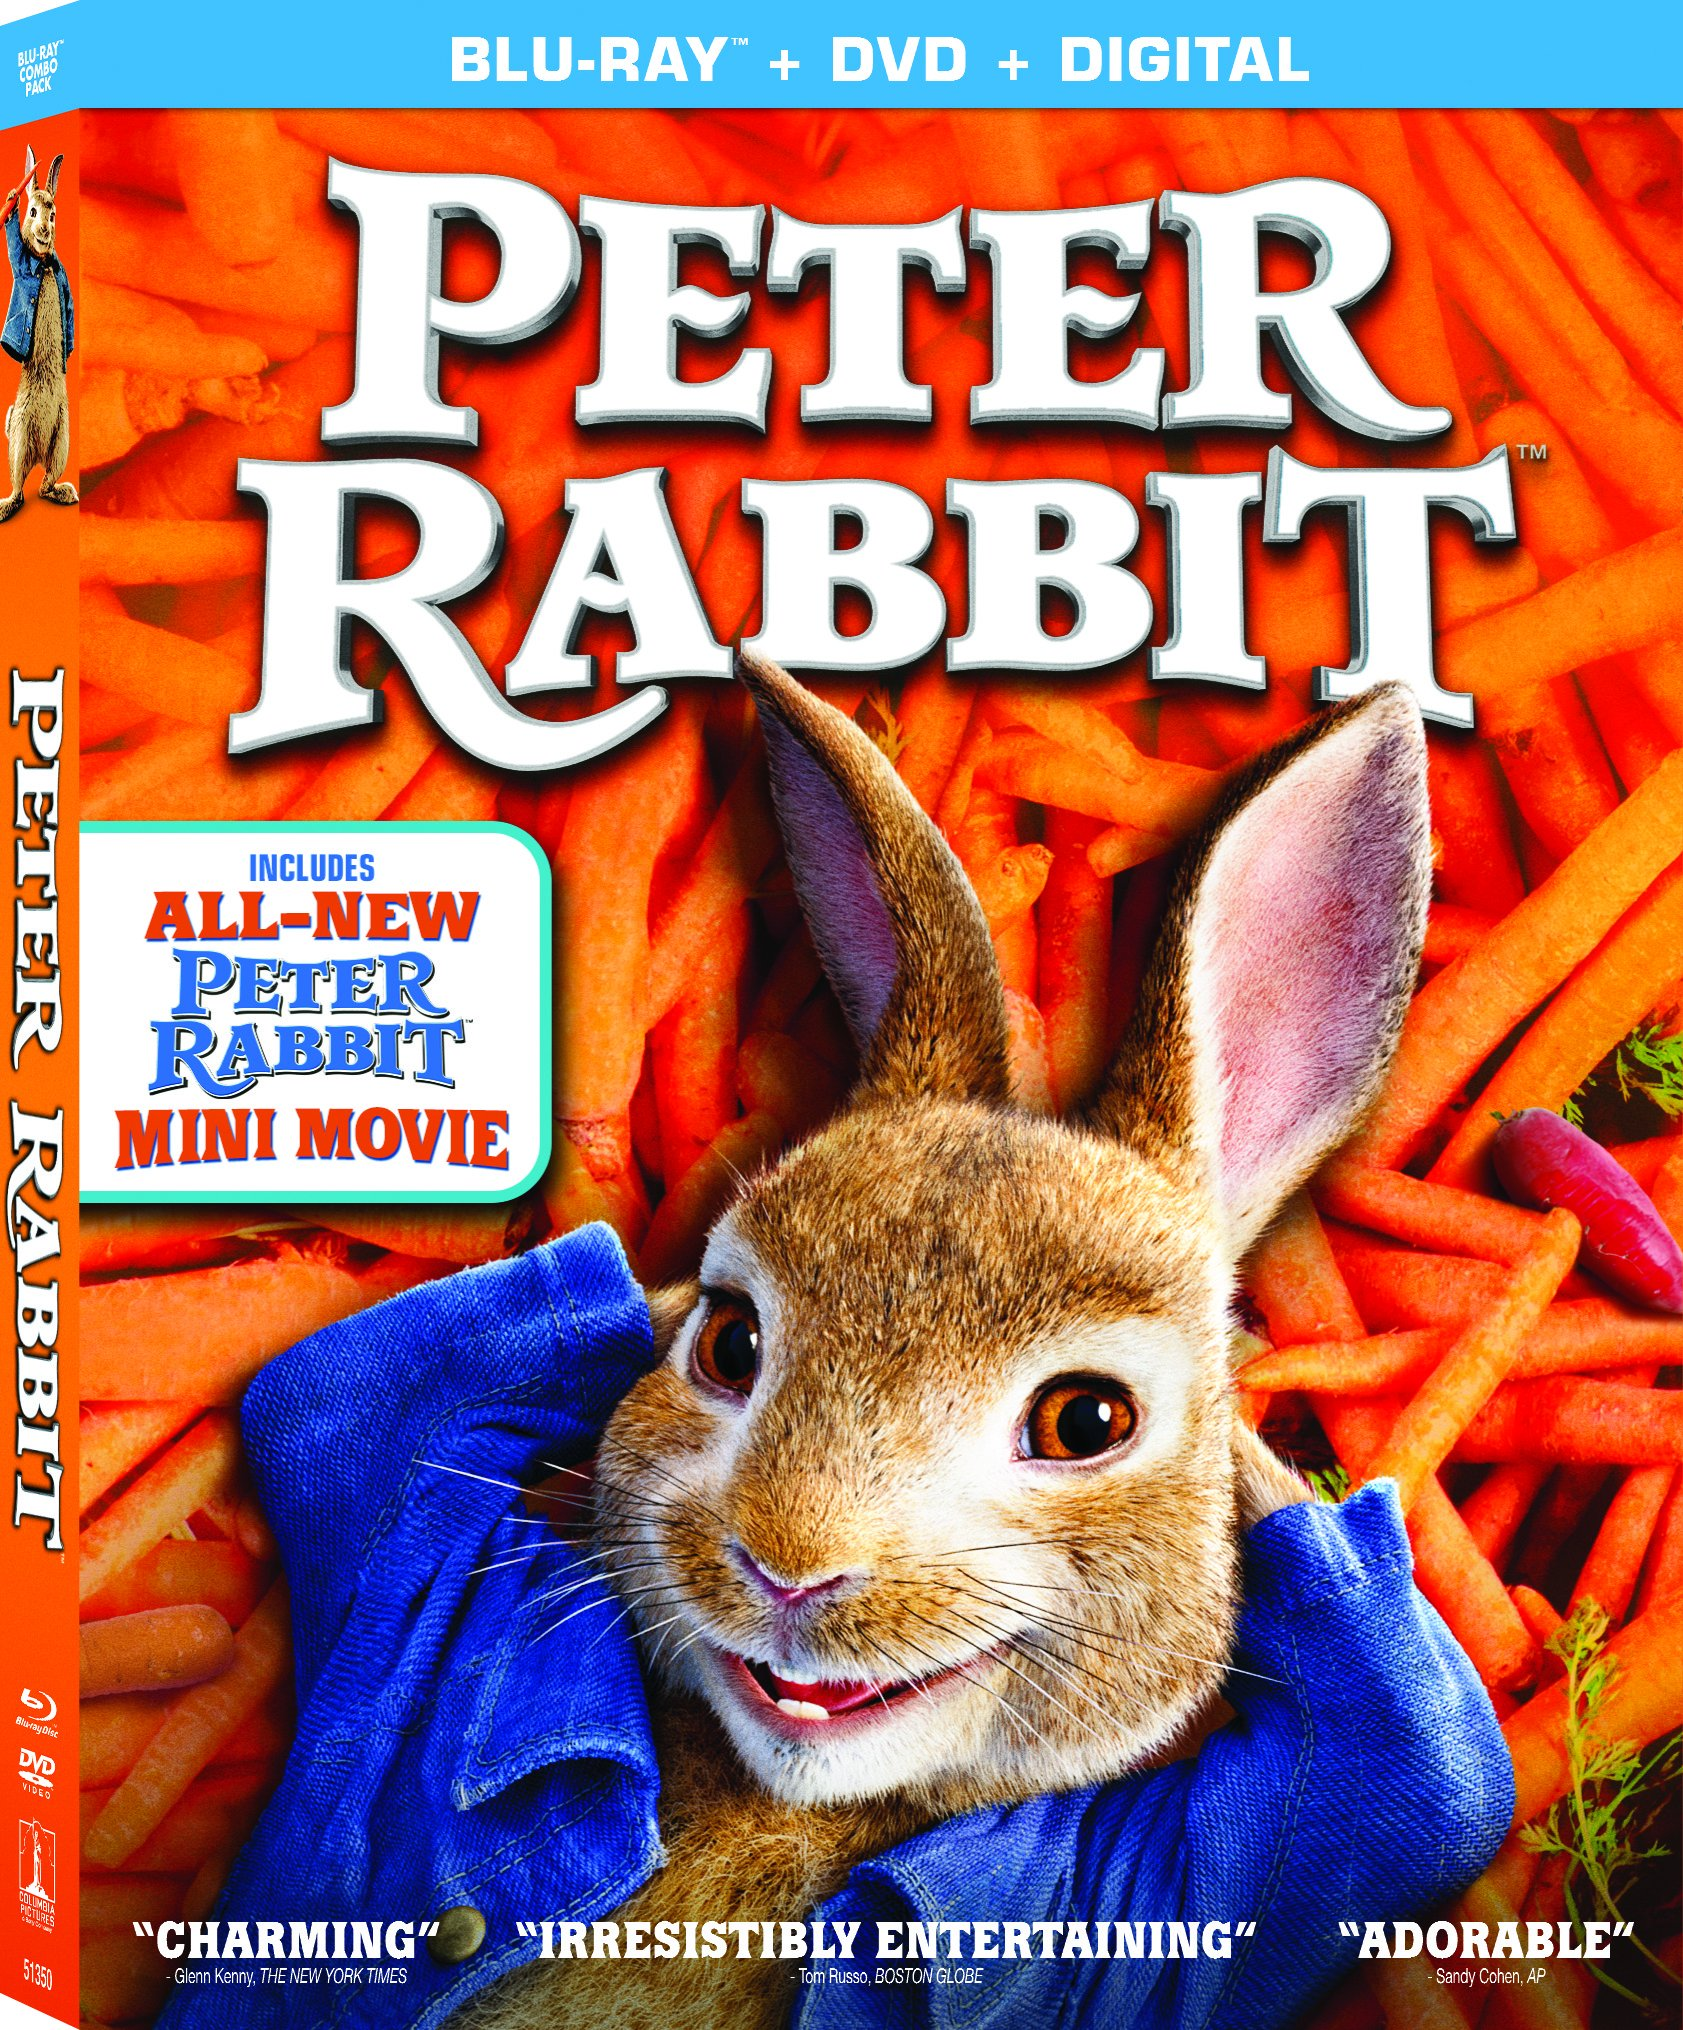 Buy Peter Rabbit Now!